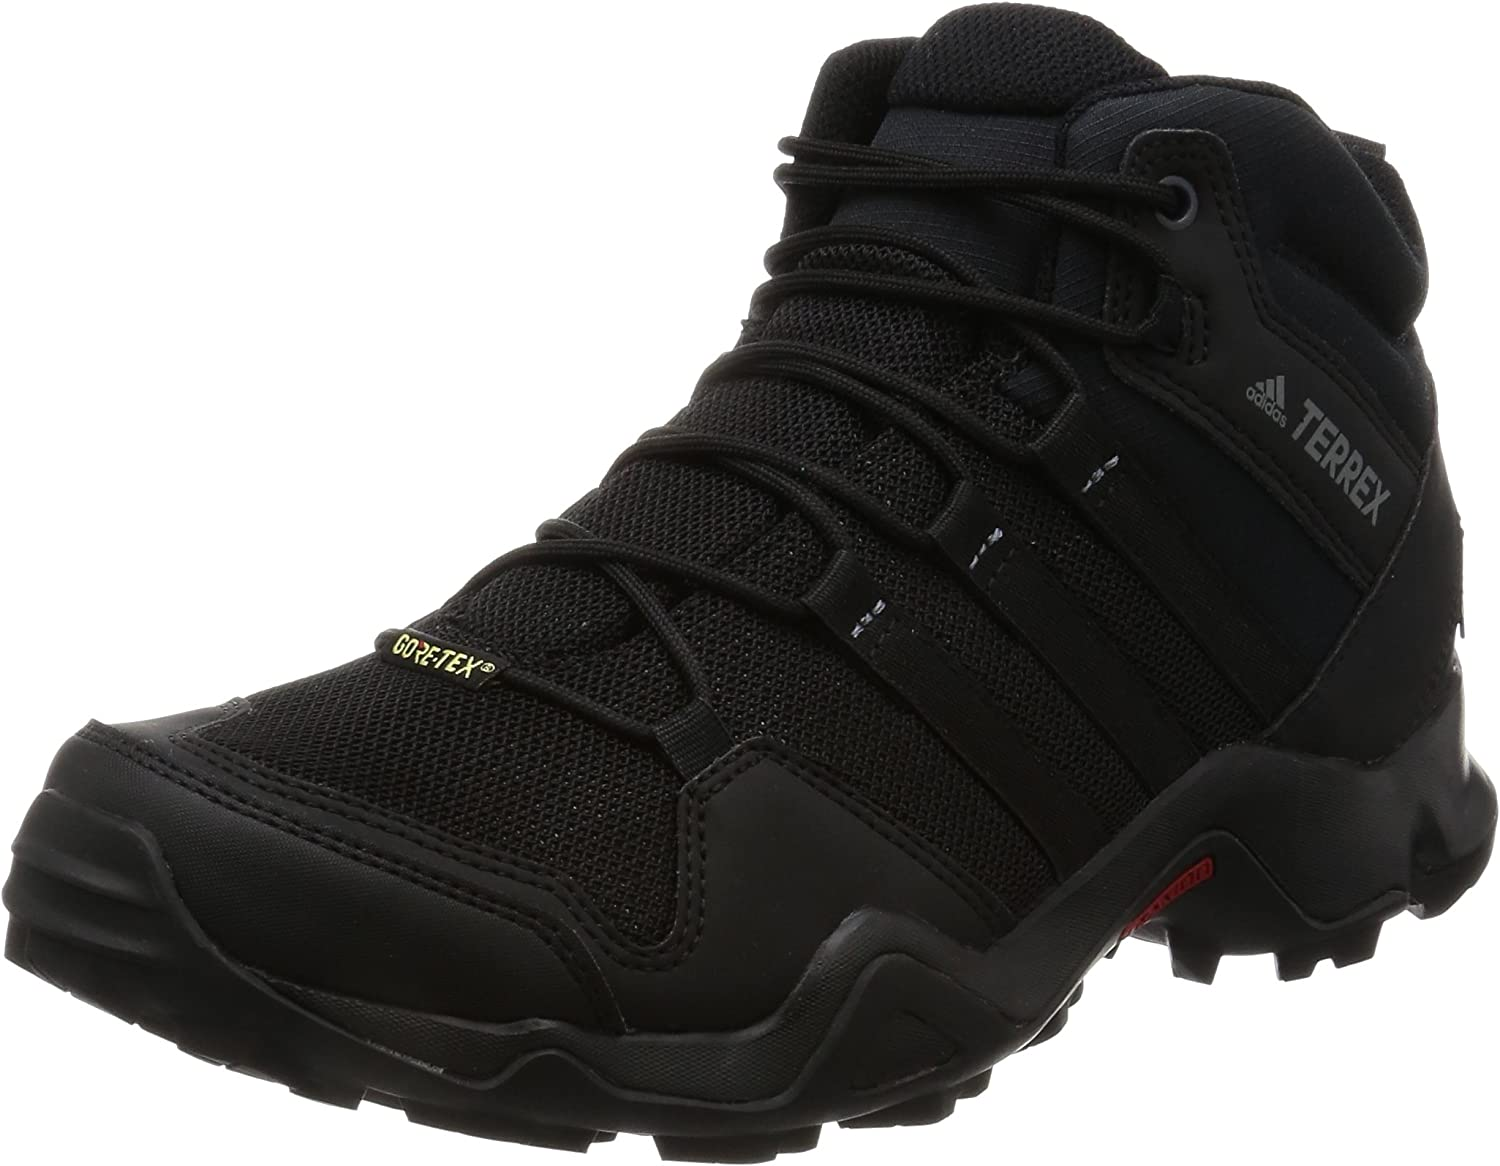 Amedrentador bebida sin  adidas Men's Terrex AX2R MID GTX Multisport Outdoor Shoes, Black (Core  Black/Core Black/Vista Grey), 7 UK 40 2/3 EU: Amazon.co.uk: Shoes & Bags